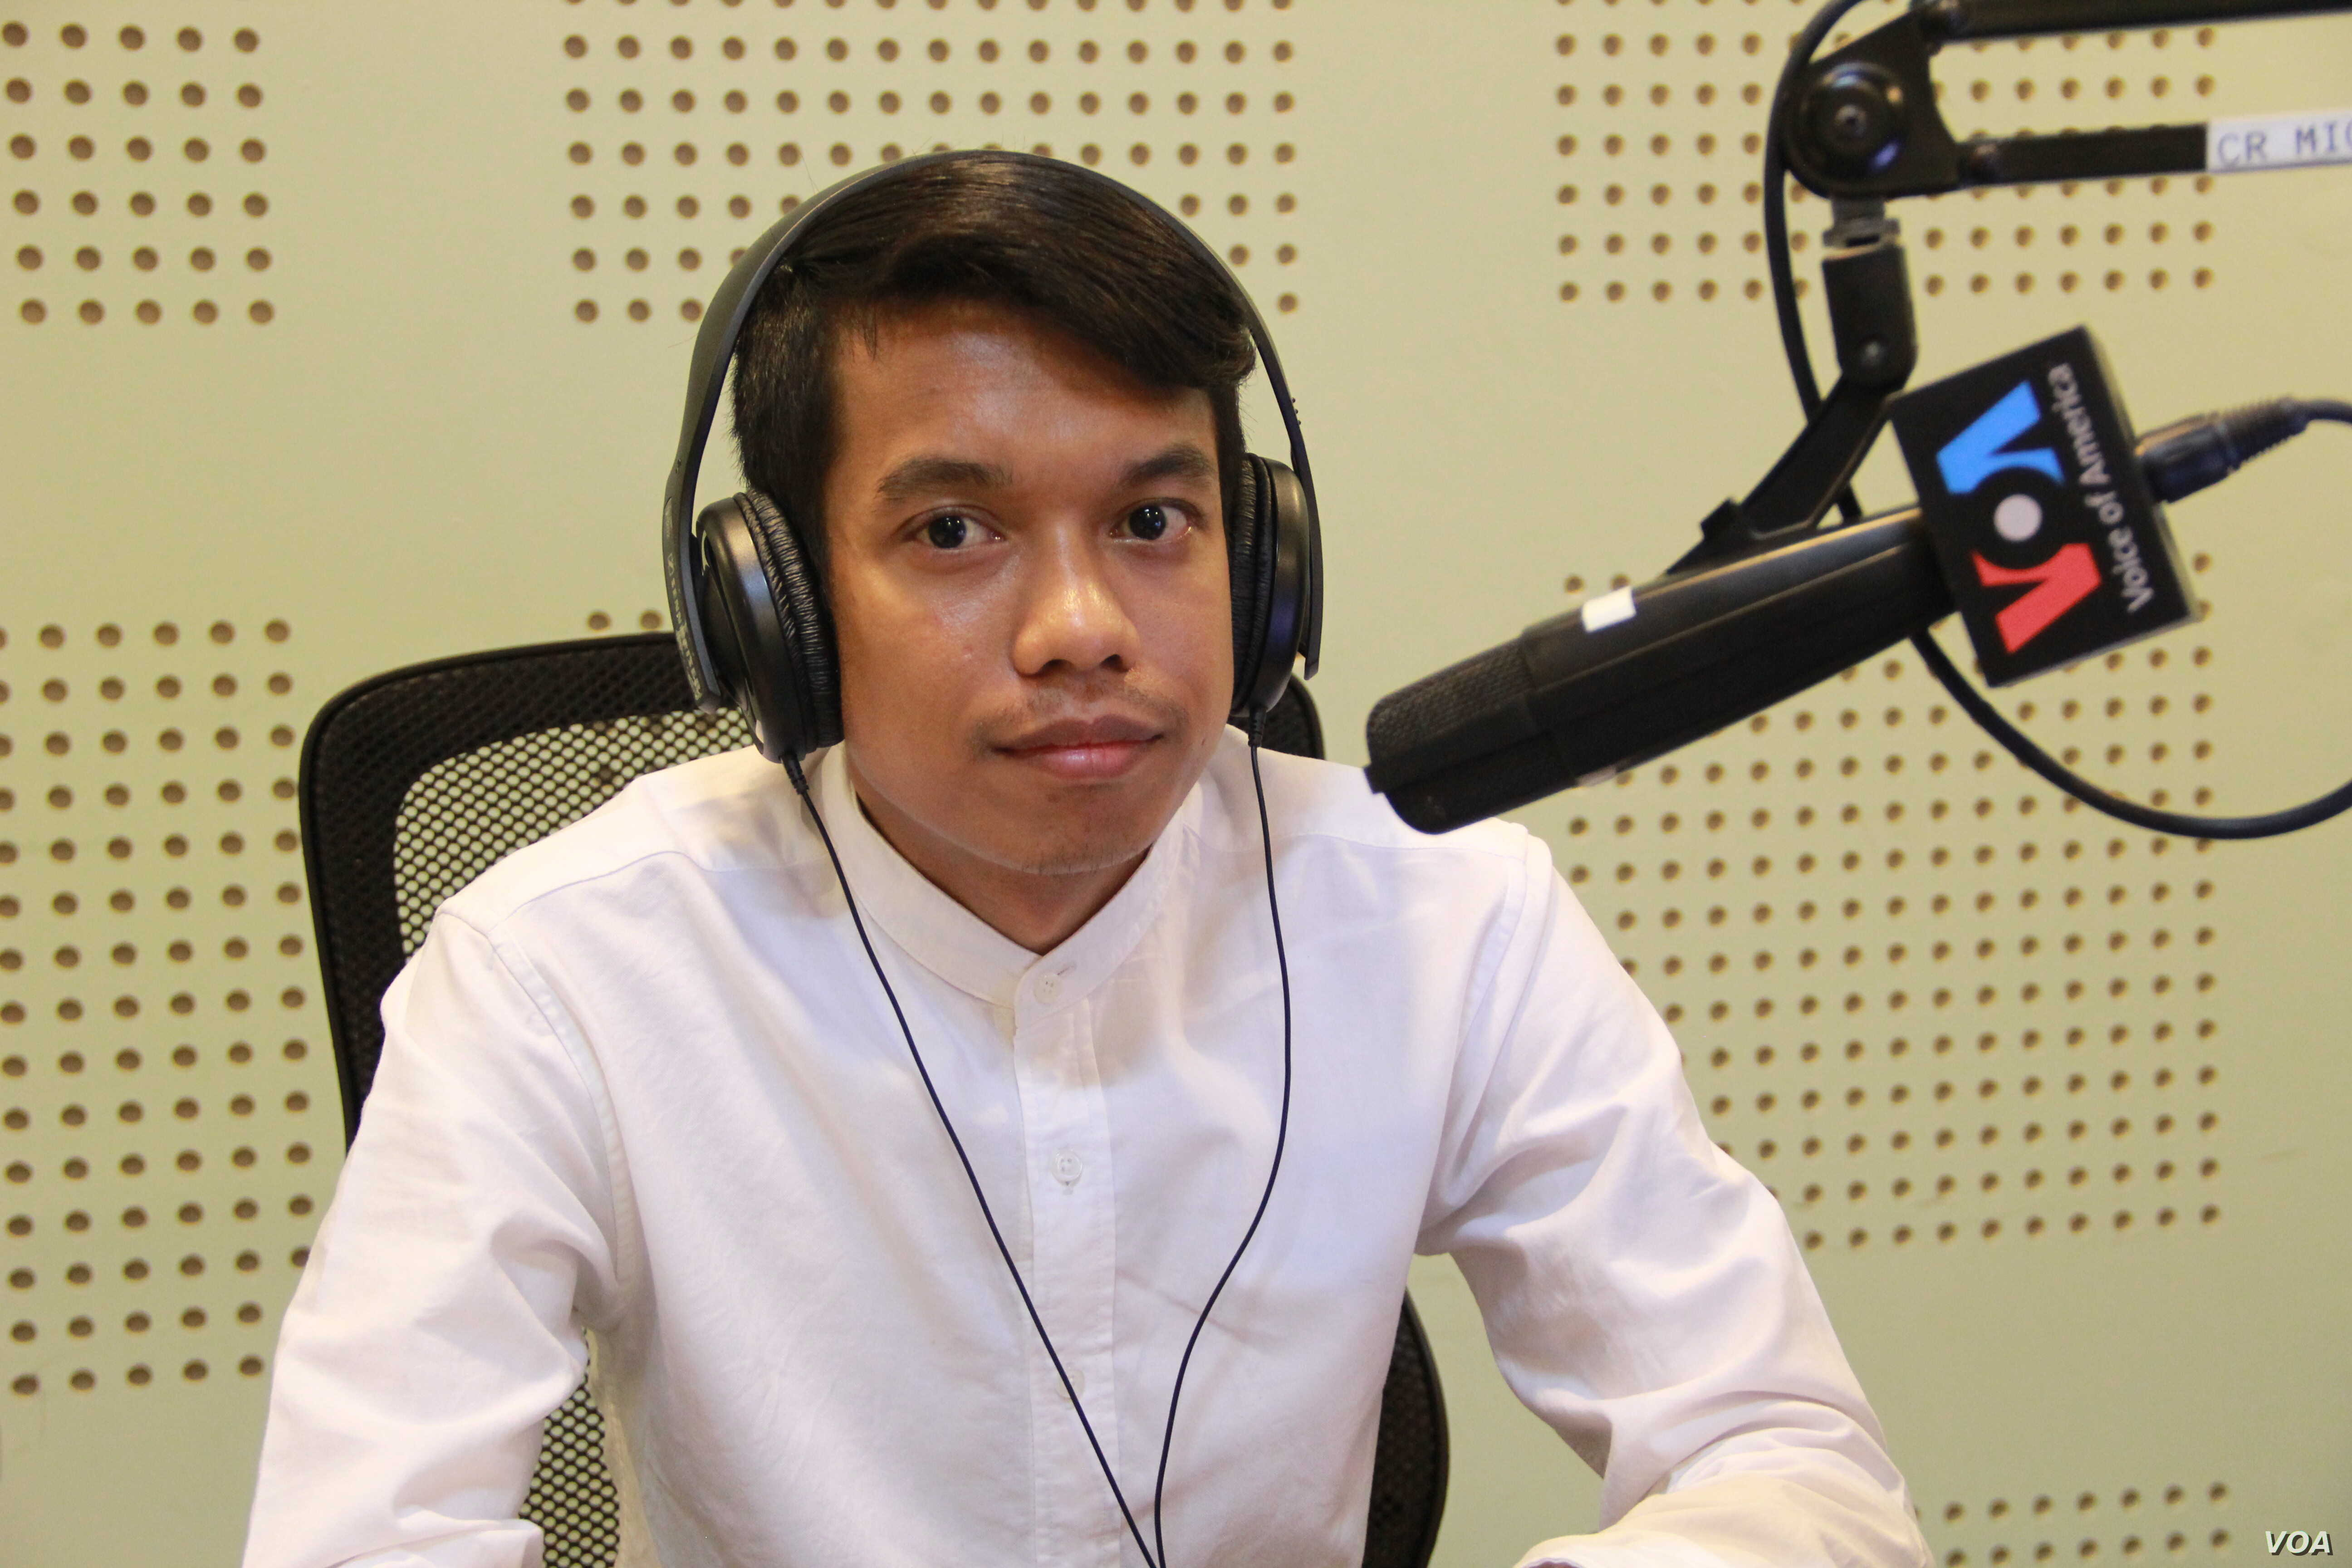 Khiev Sokmesa, senior Software Developer at InSTEDD iLab, discusses opportunities and challenges in starting a Tech Start-Up in Cambodia, in VOA Khmer's New Voices Show, on Monday, April 18, 2016. (Lim Sothy/VOA Khmer)